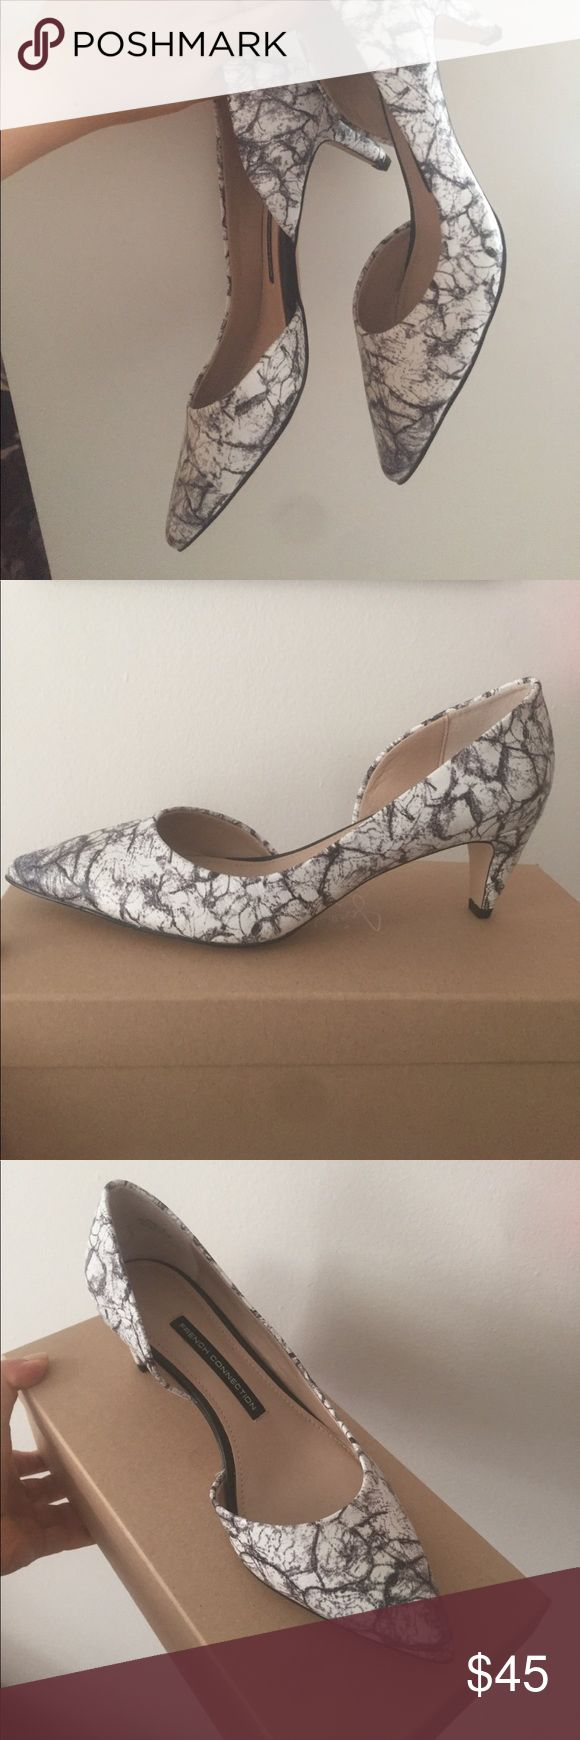 French Connection Marble Heels Super pretty marble print heels from French connection, new never worn. Still has protective tags on bottom sole. Heel height is about two inches, size 36.5. Perfect height for function and fashion! Would look great paired with jeans or work outfits. French Connection Shoes